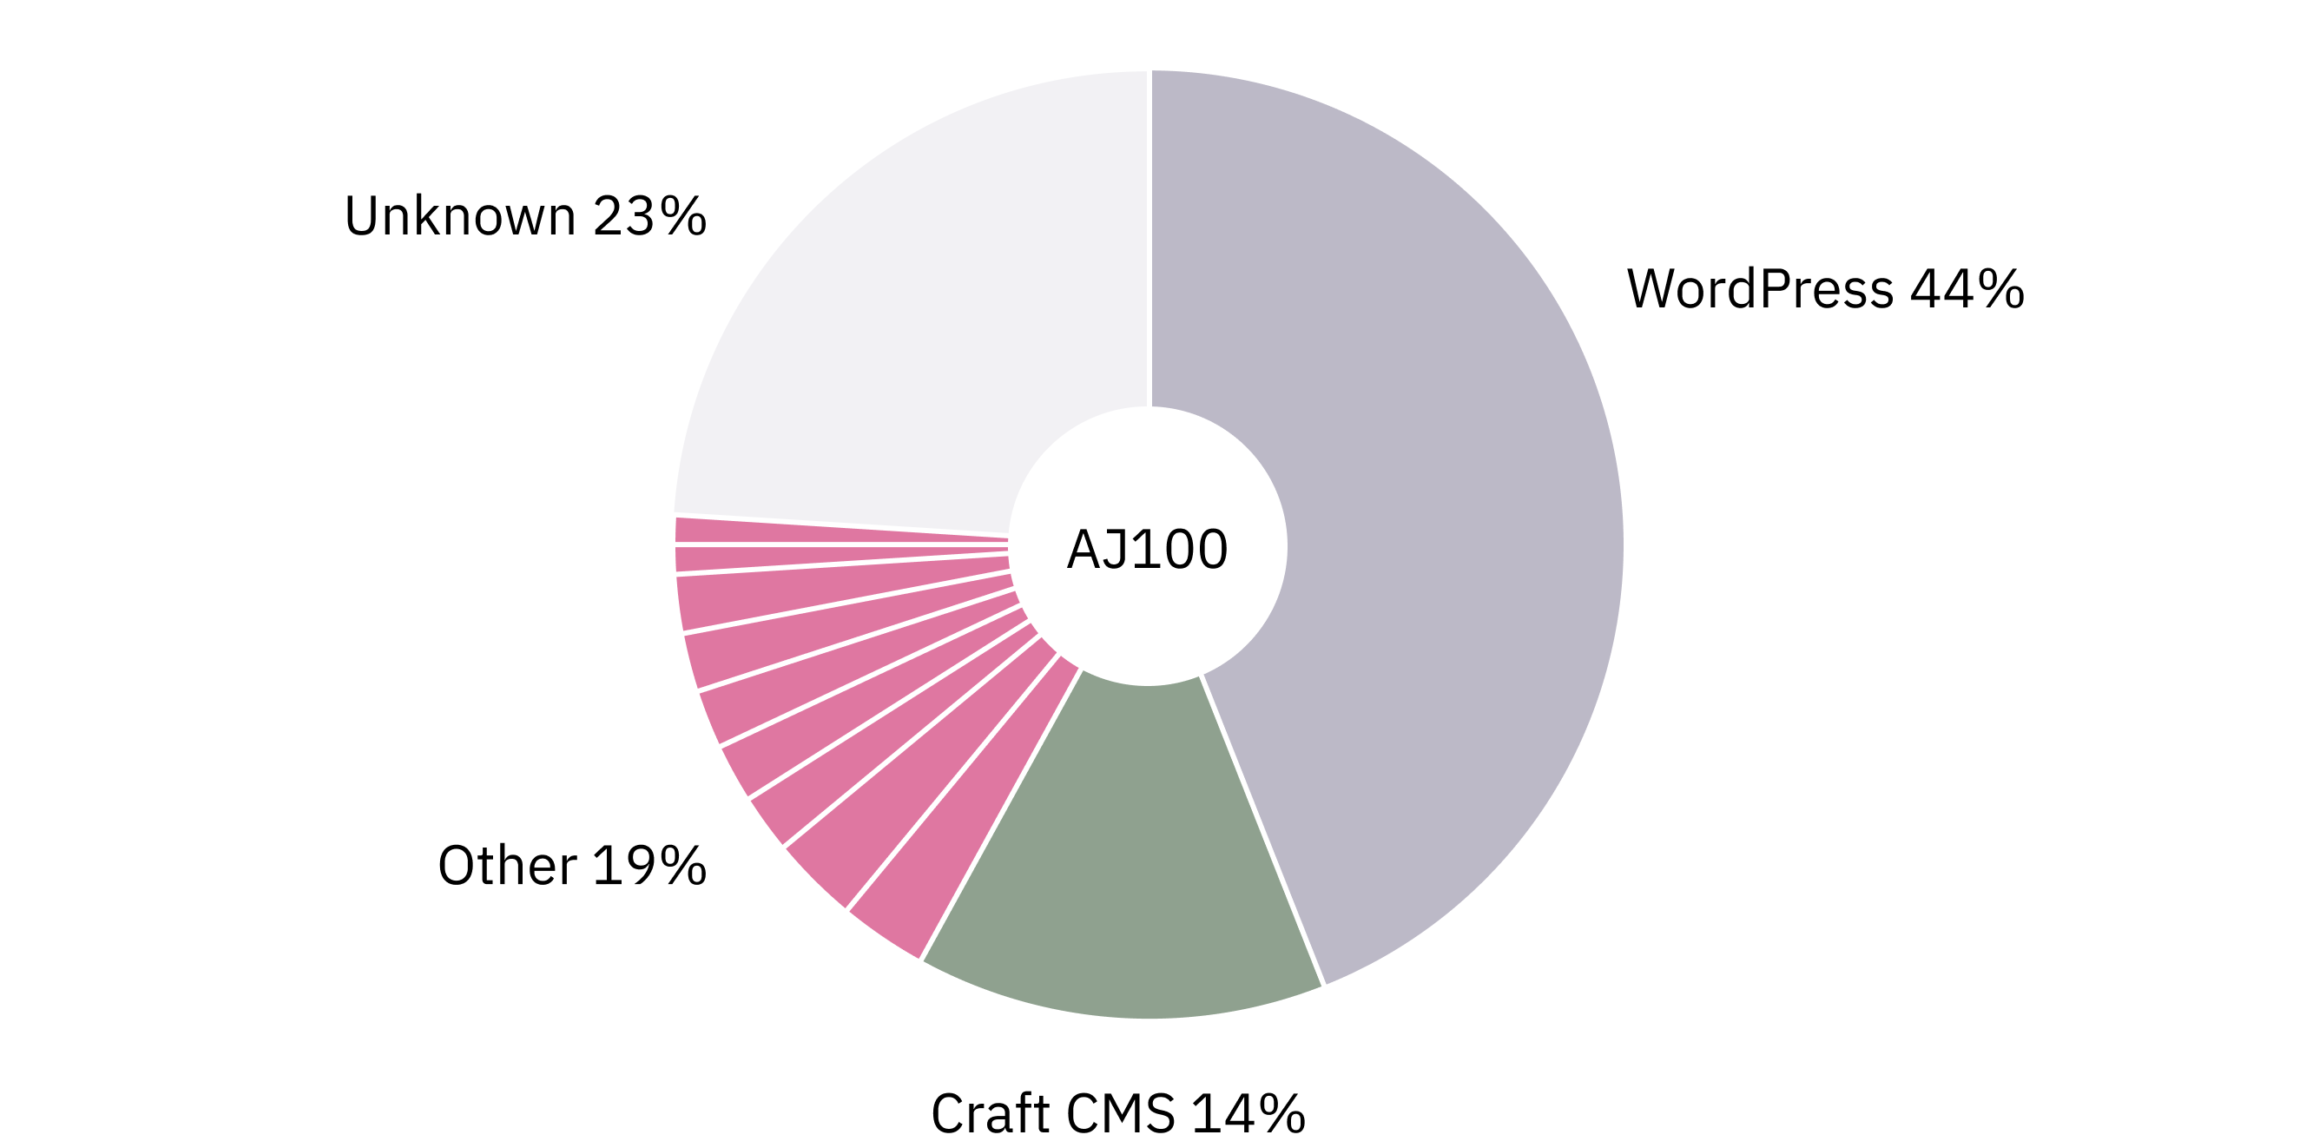 Pie chart showing the distribution of content management systems running AJ100 practice websites